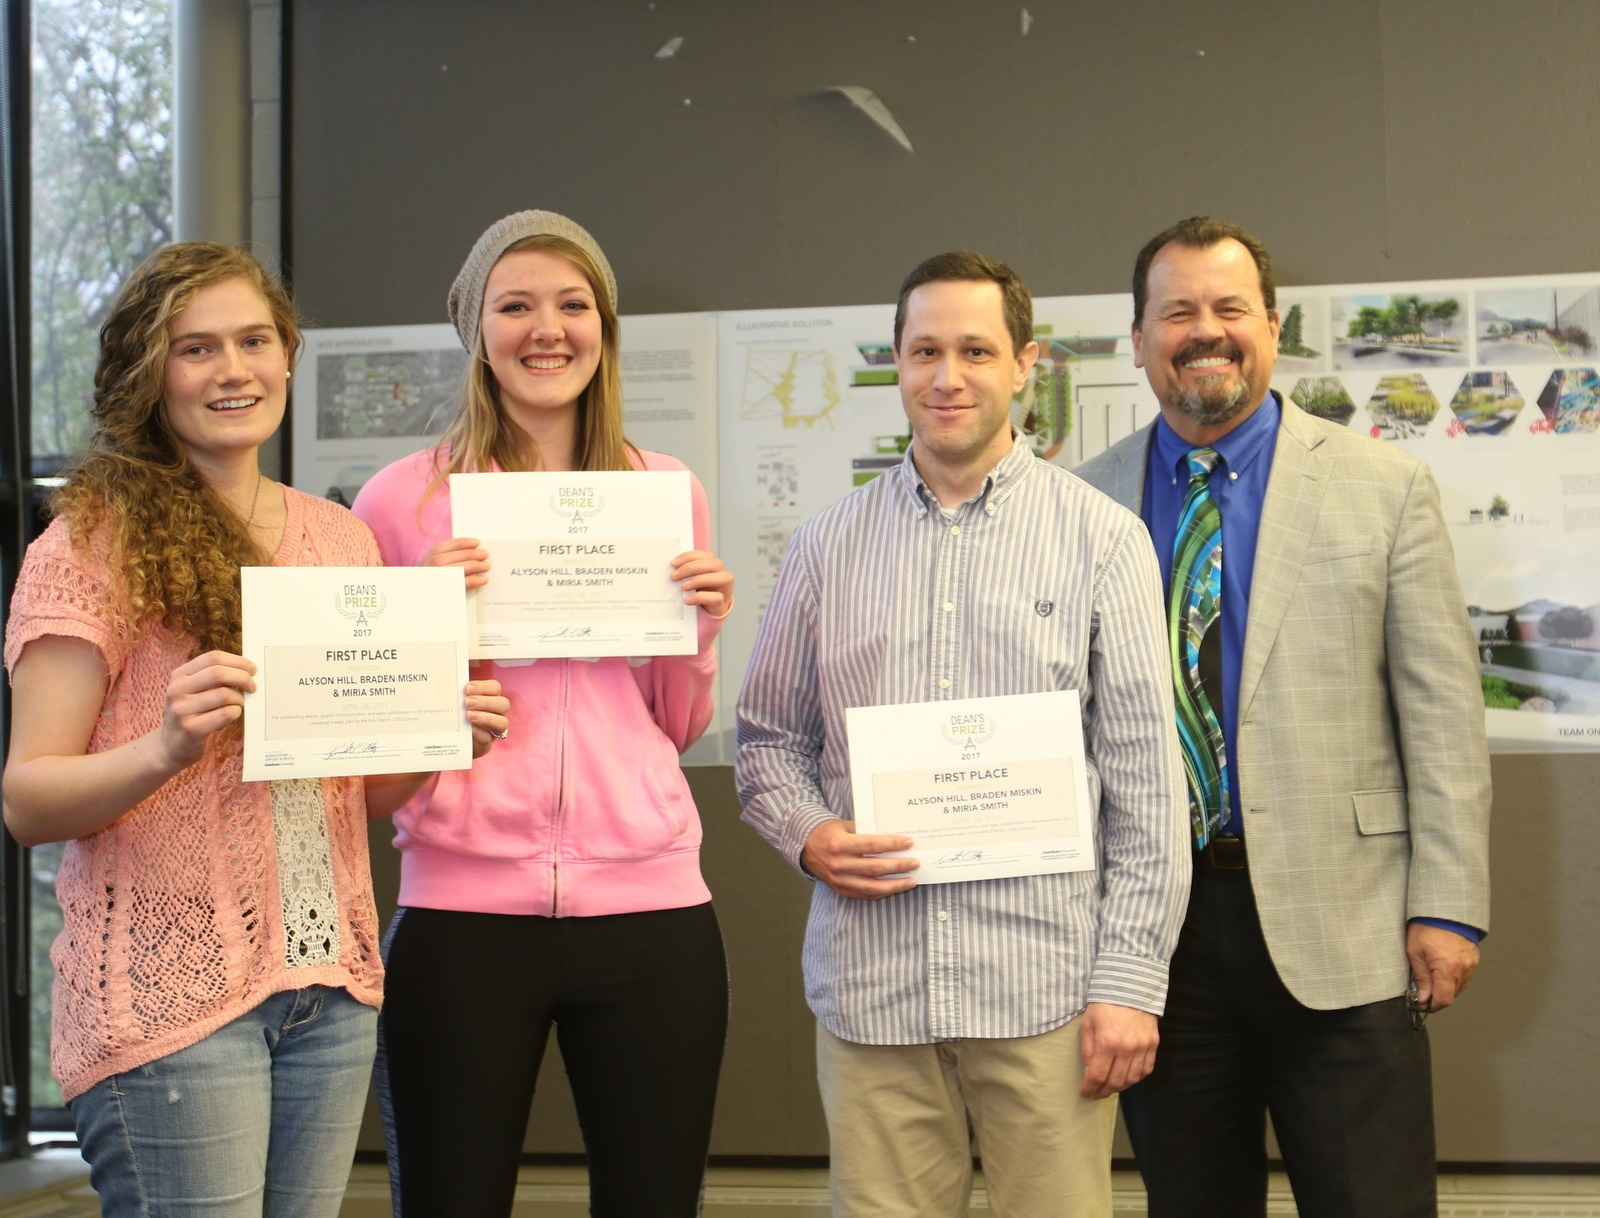 USU LAEP Students Receive Dean's Prize for Redesign Project